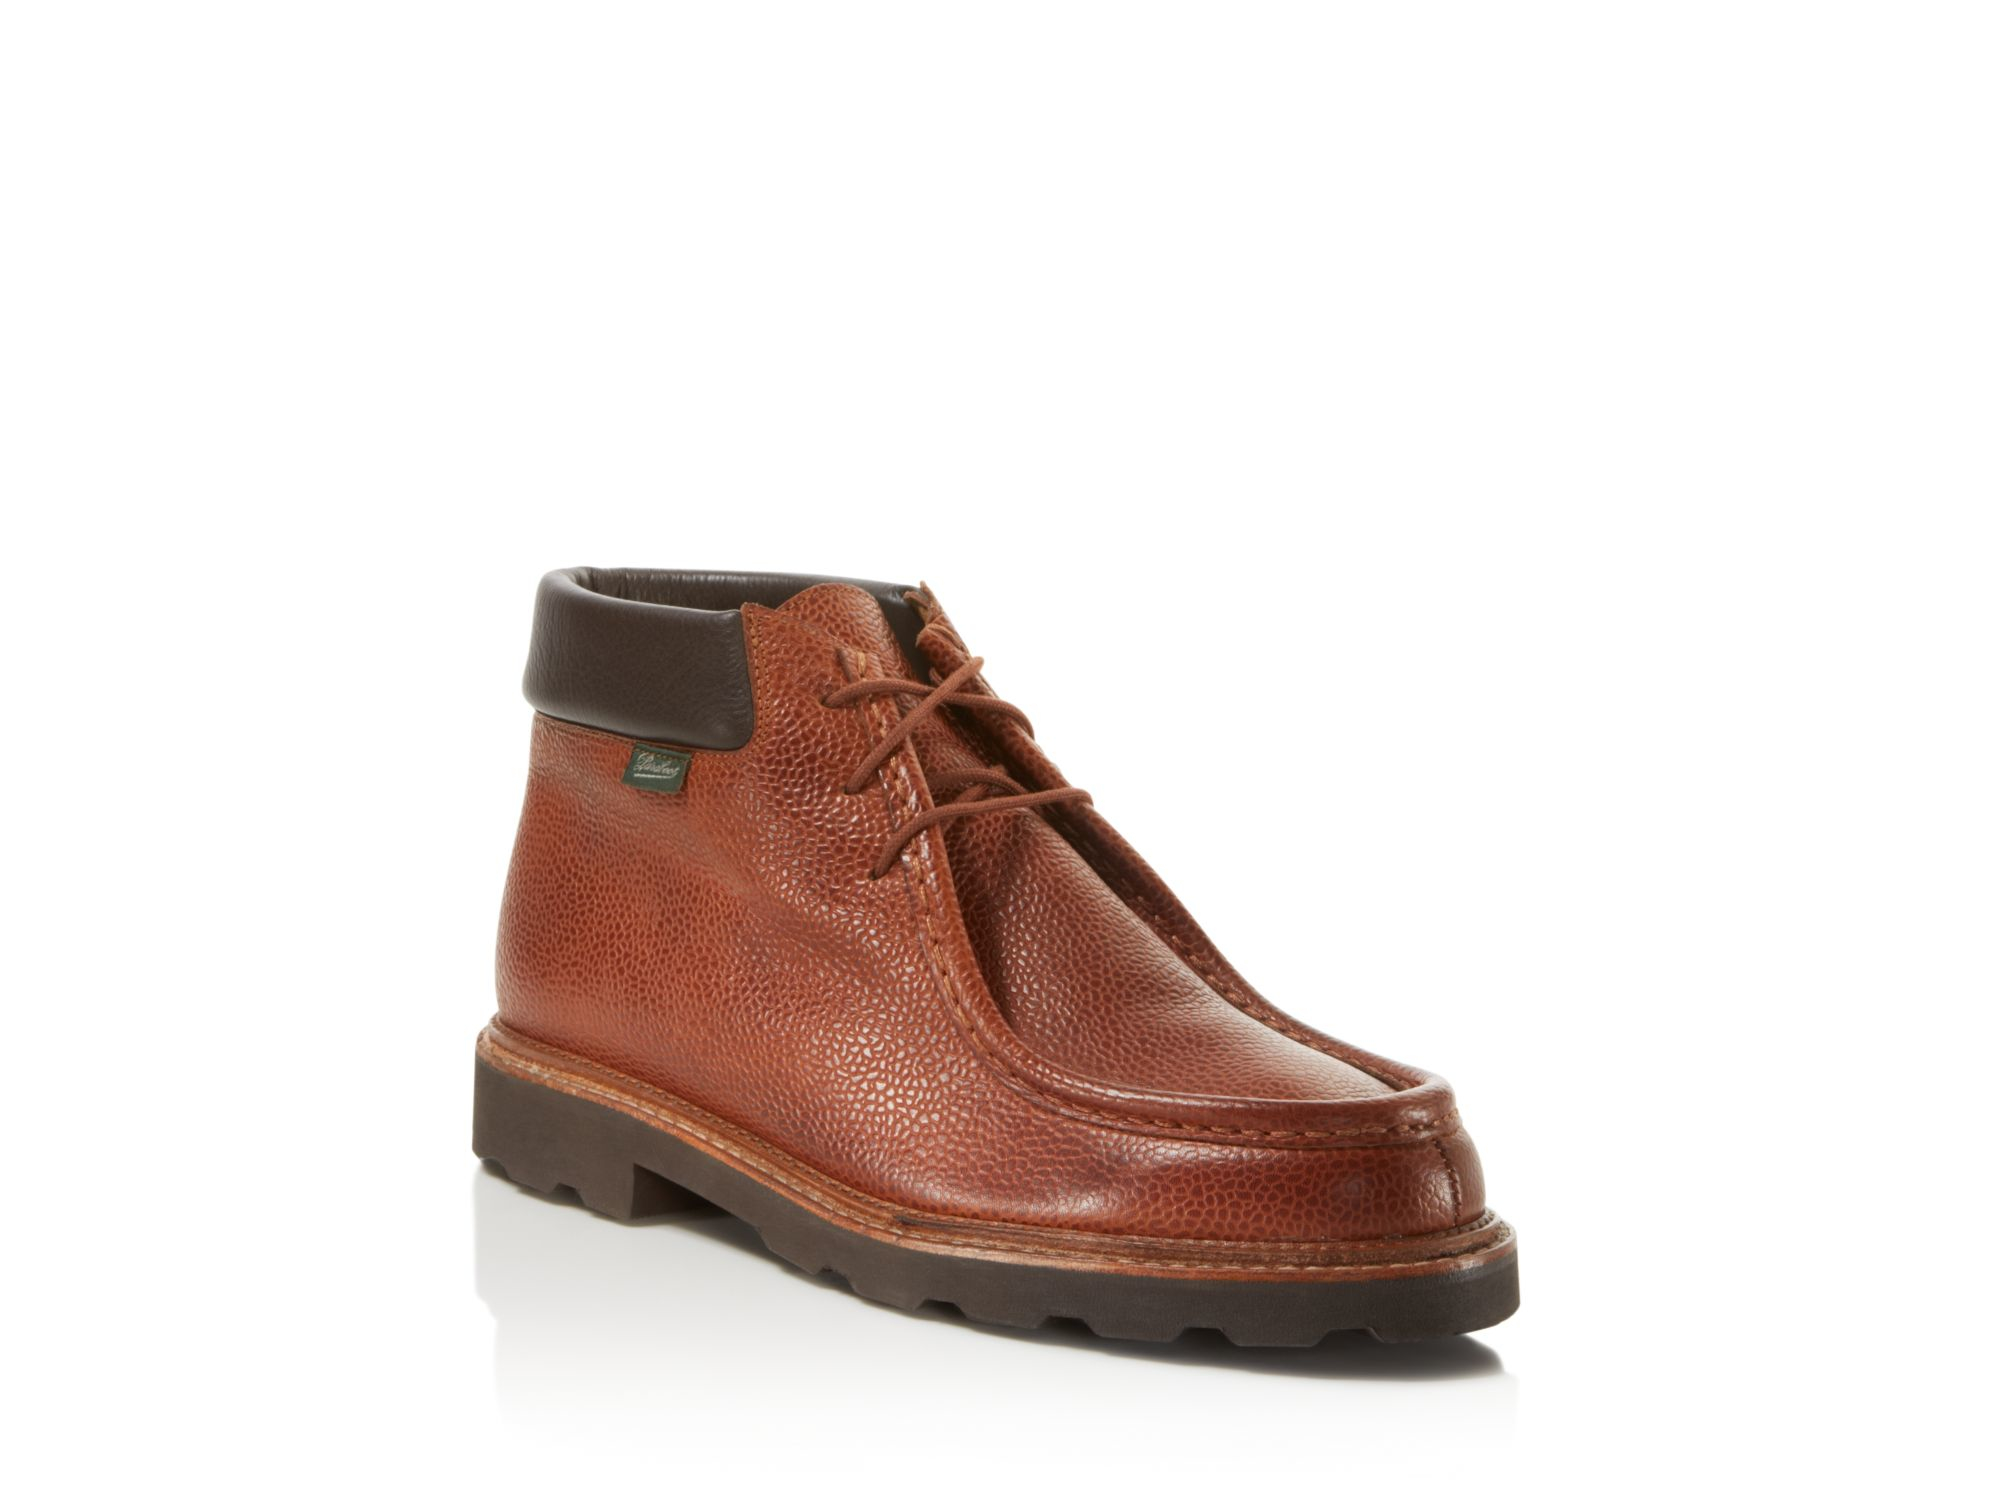 Paraboot Milly Pebbled Leather Wallabee Chukka Boots in Brown for ...